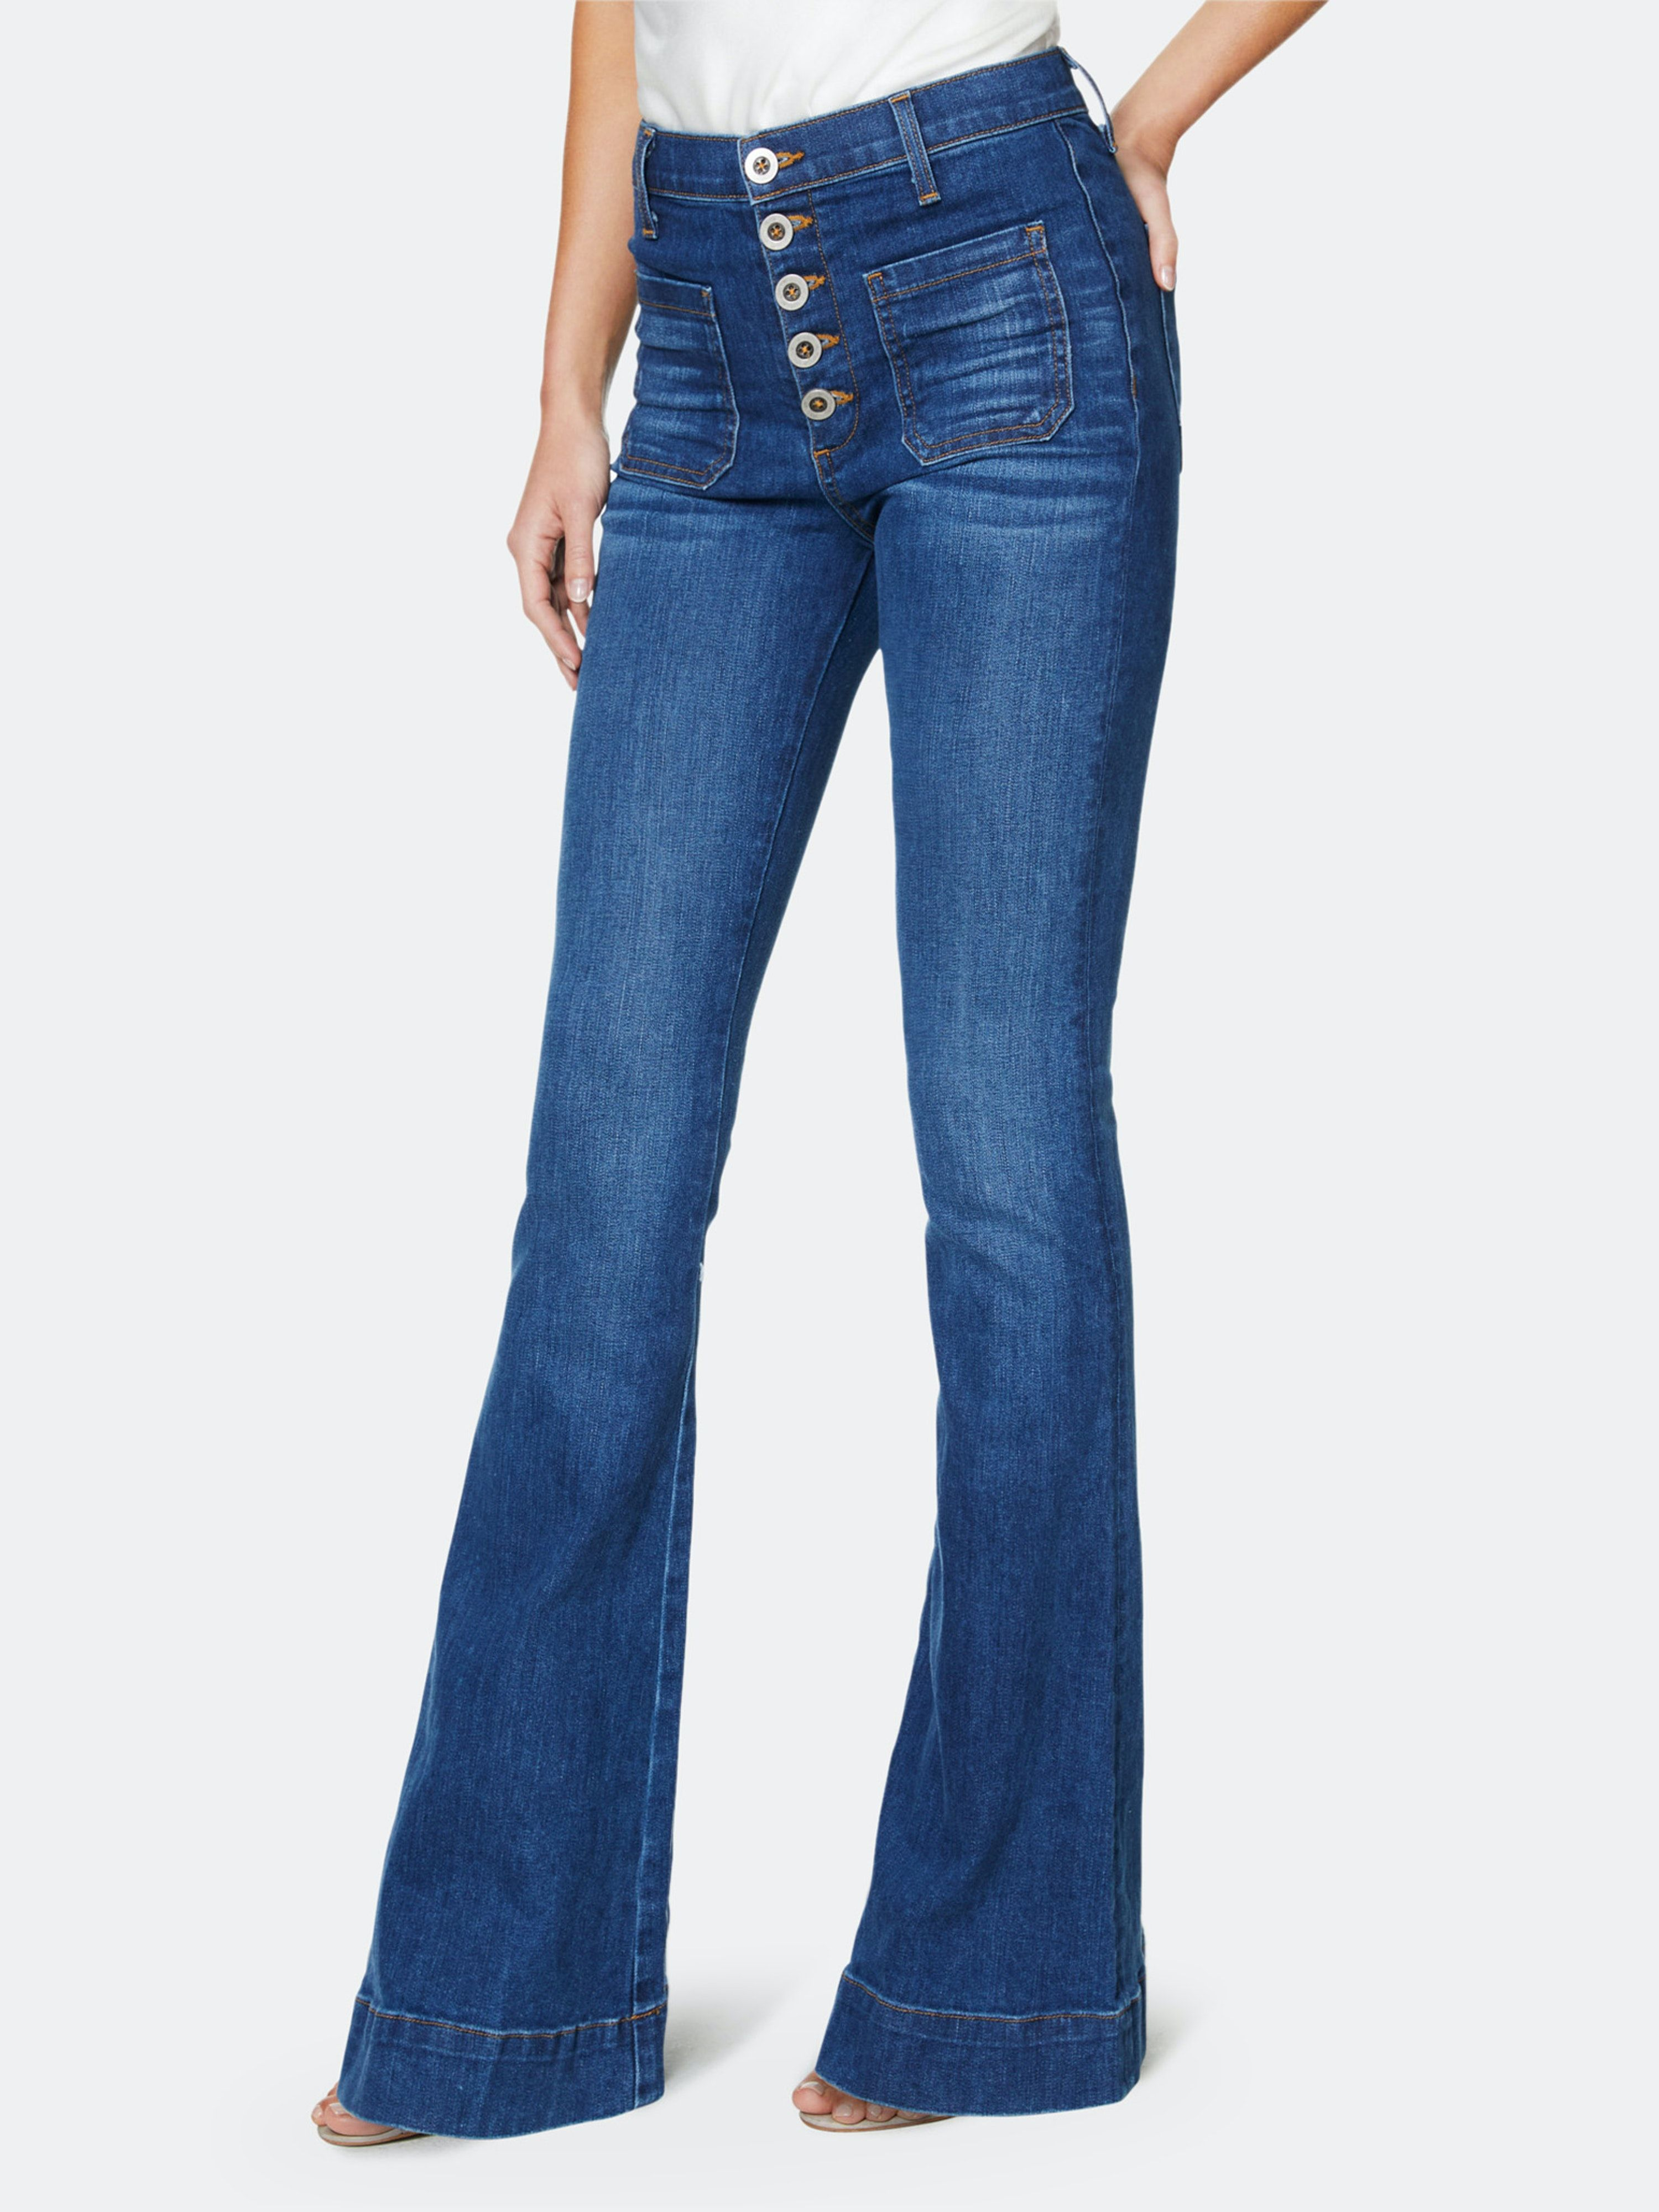 2020 New Women Jeans Fitted Trousers Smart Casual Jeans Female Grey Check Trousers Jeans Flare